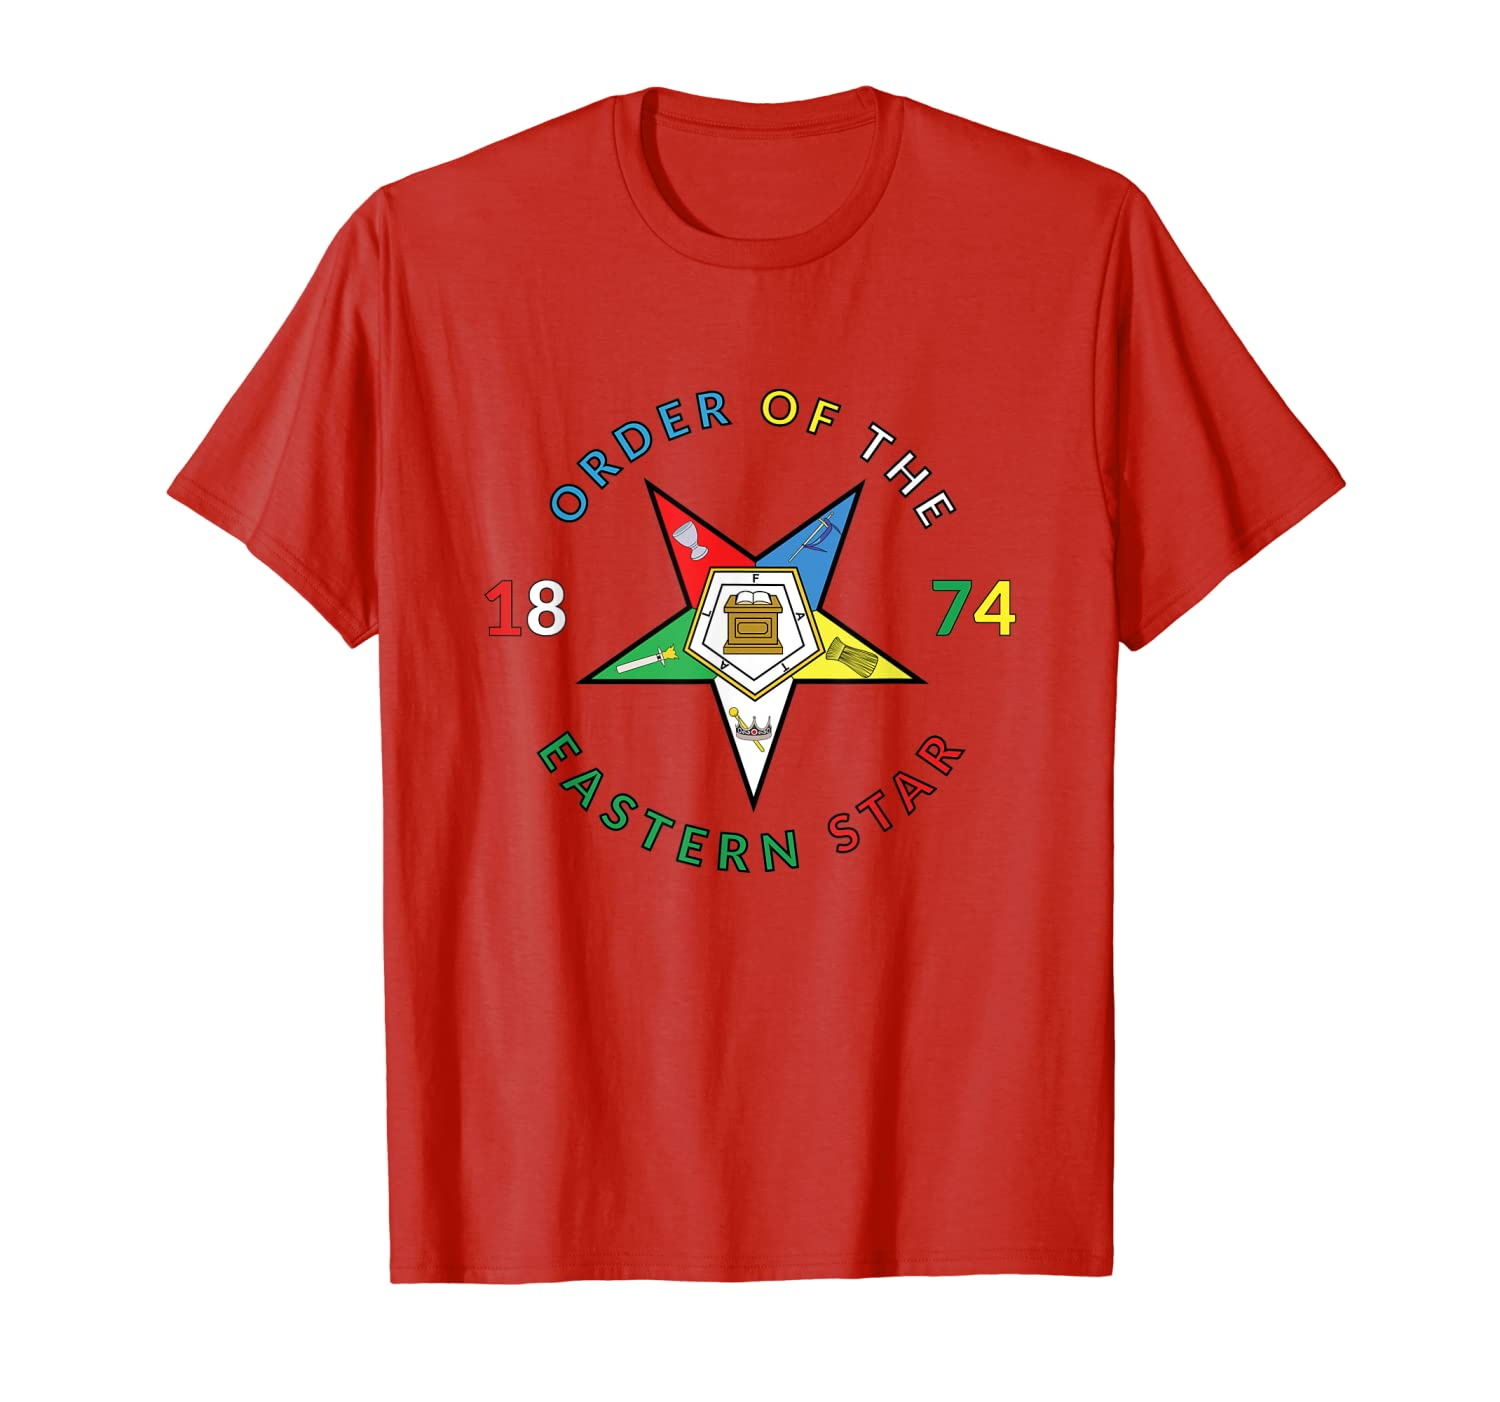 90f49d64 Amazon.com: Order Eastern Star 1874 PHA T Shirt OES Tee Prince Hall:  Clothing